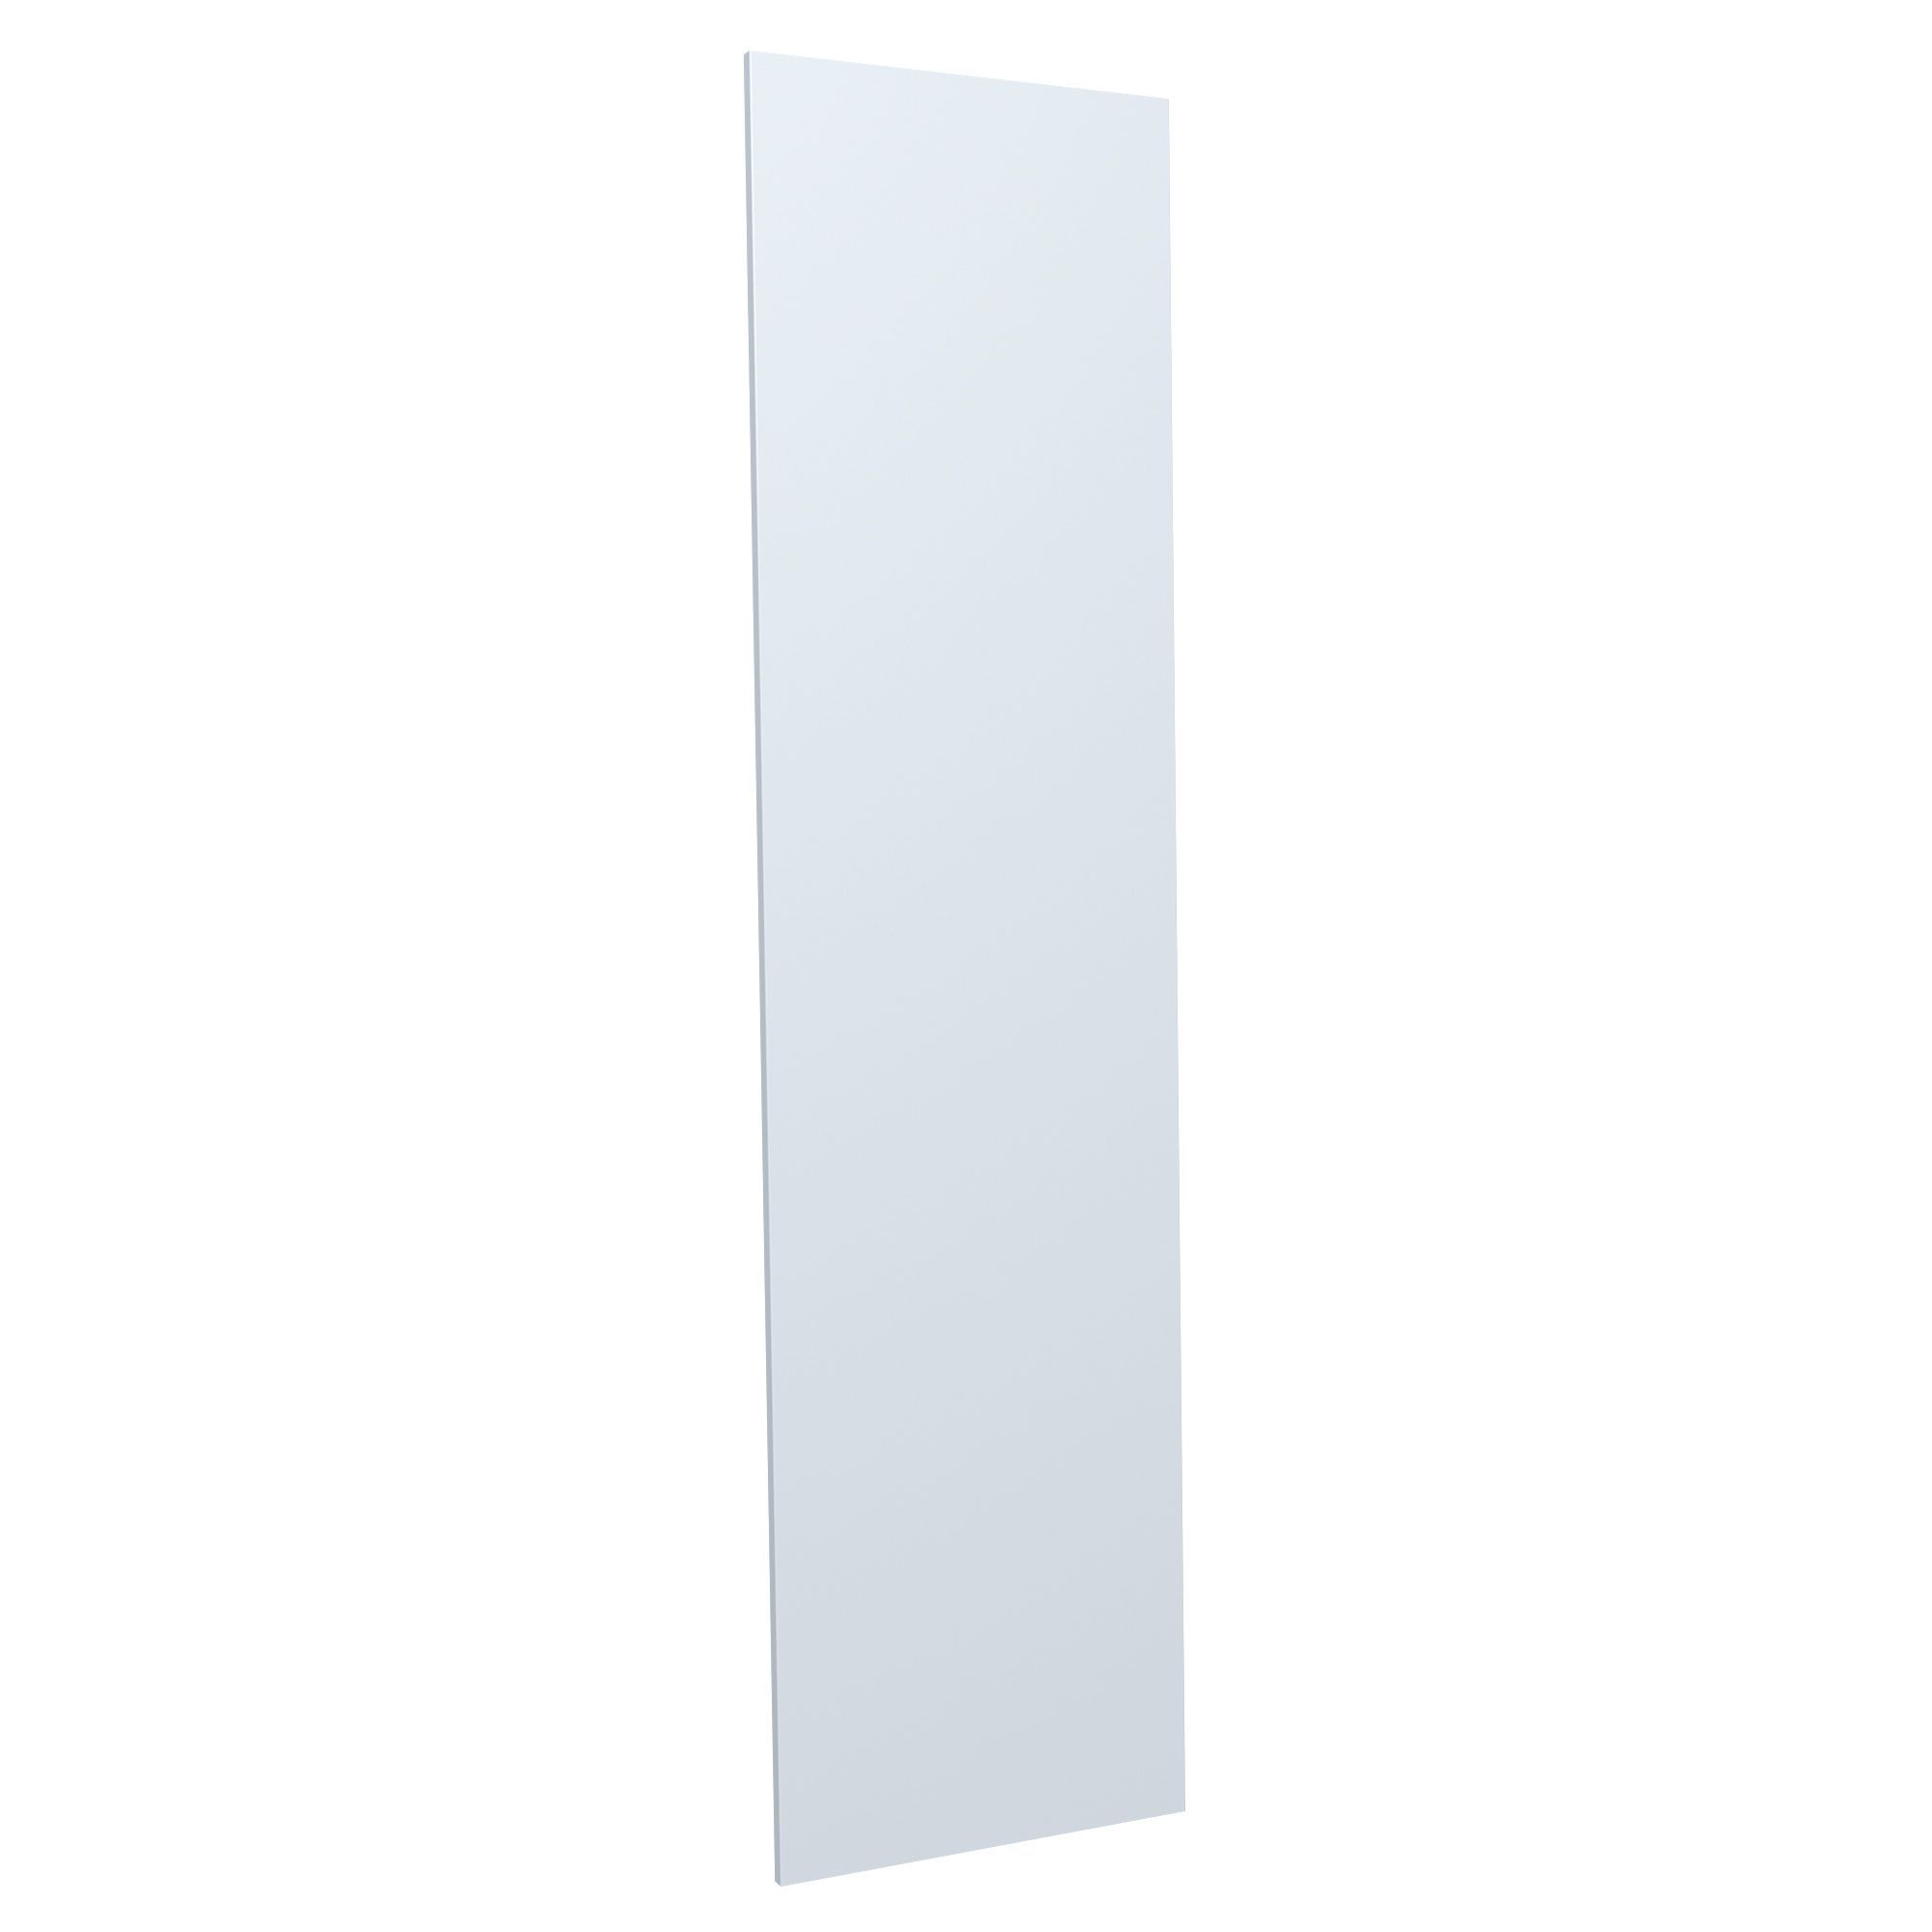 Darwin Modular White Wardrobe Door (h)1936mm (w)497mm